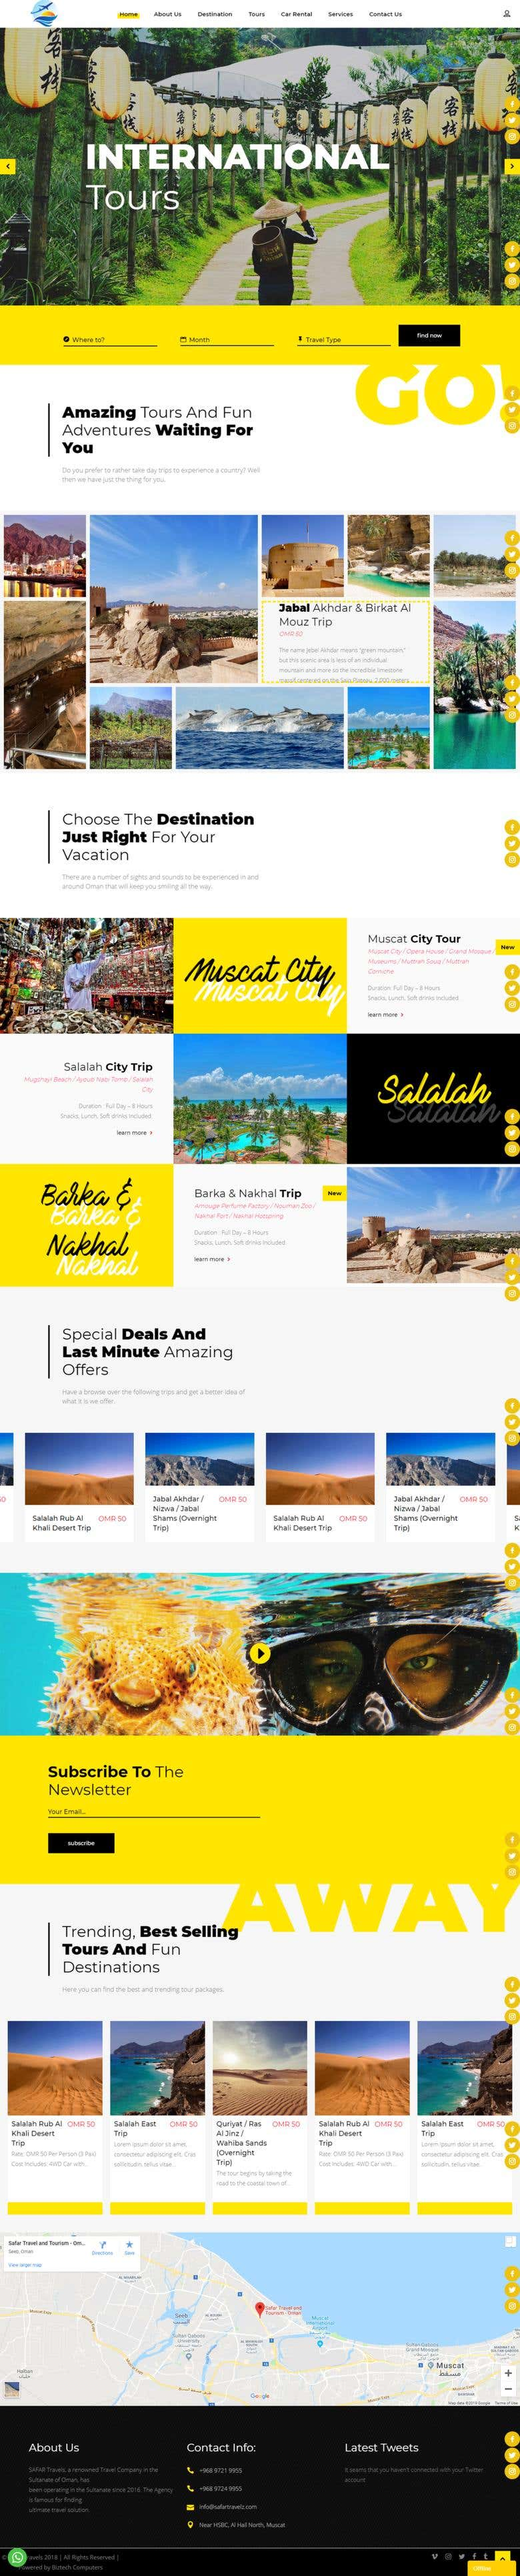 Travel Company in the Sultanate of Oman | Freelancer